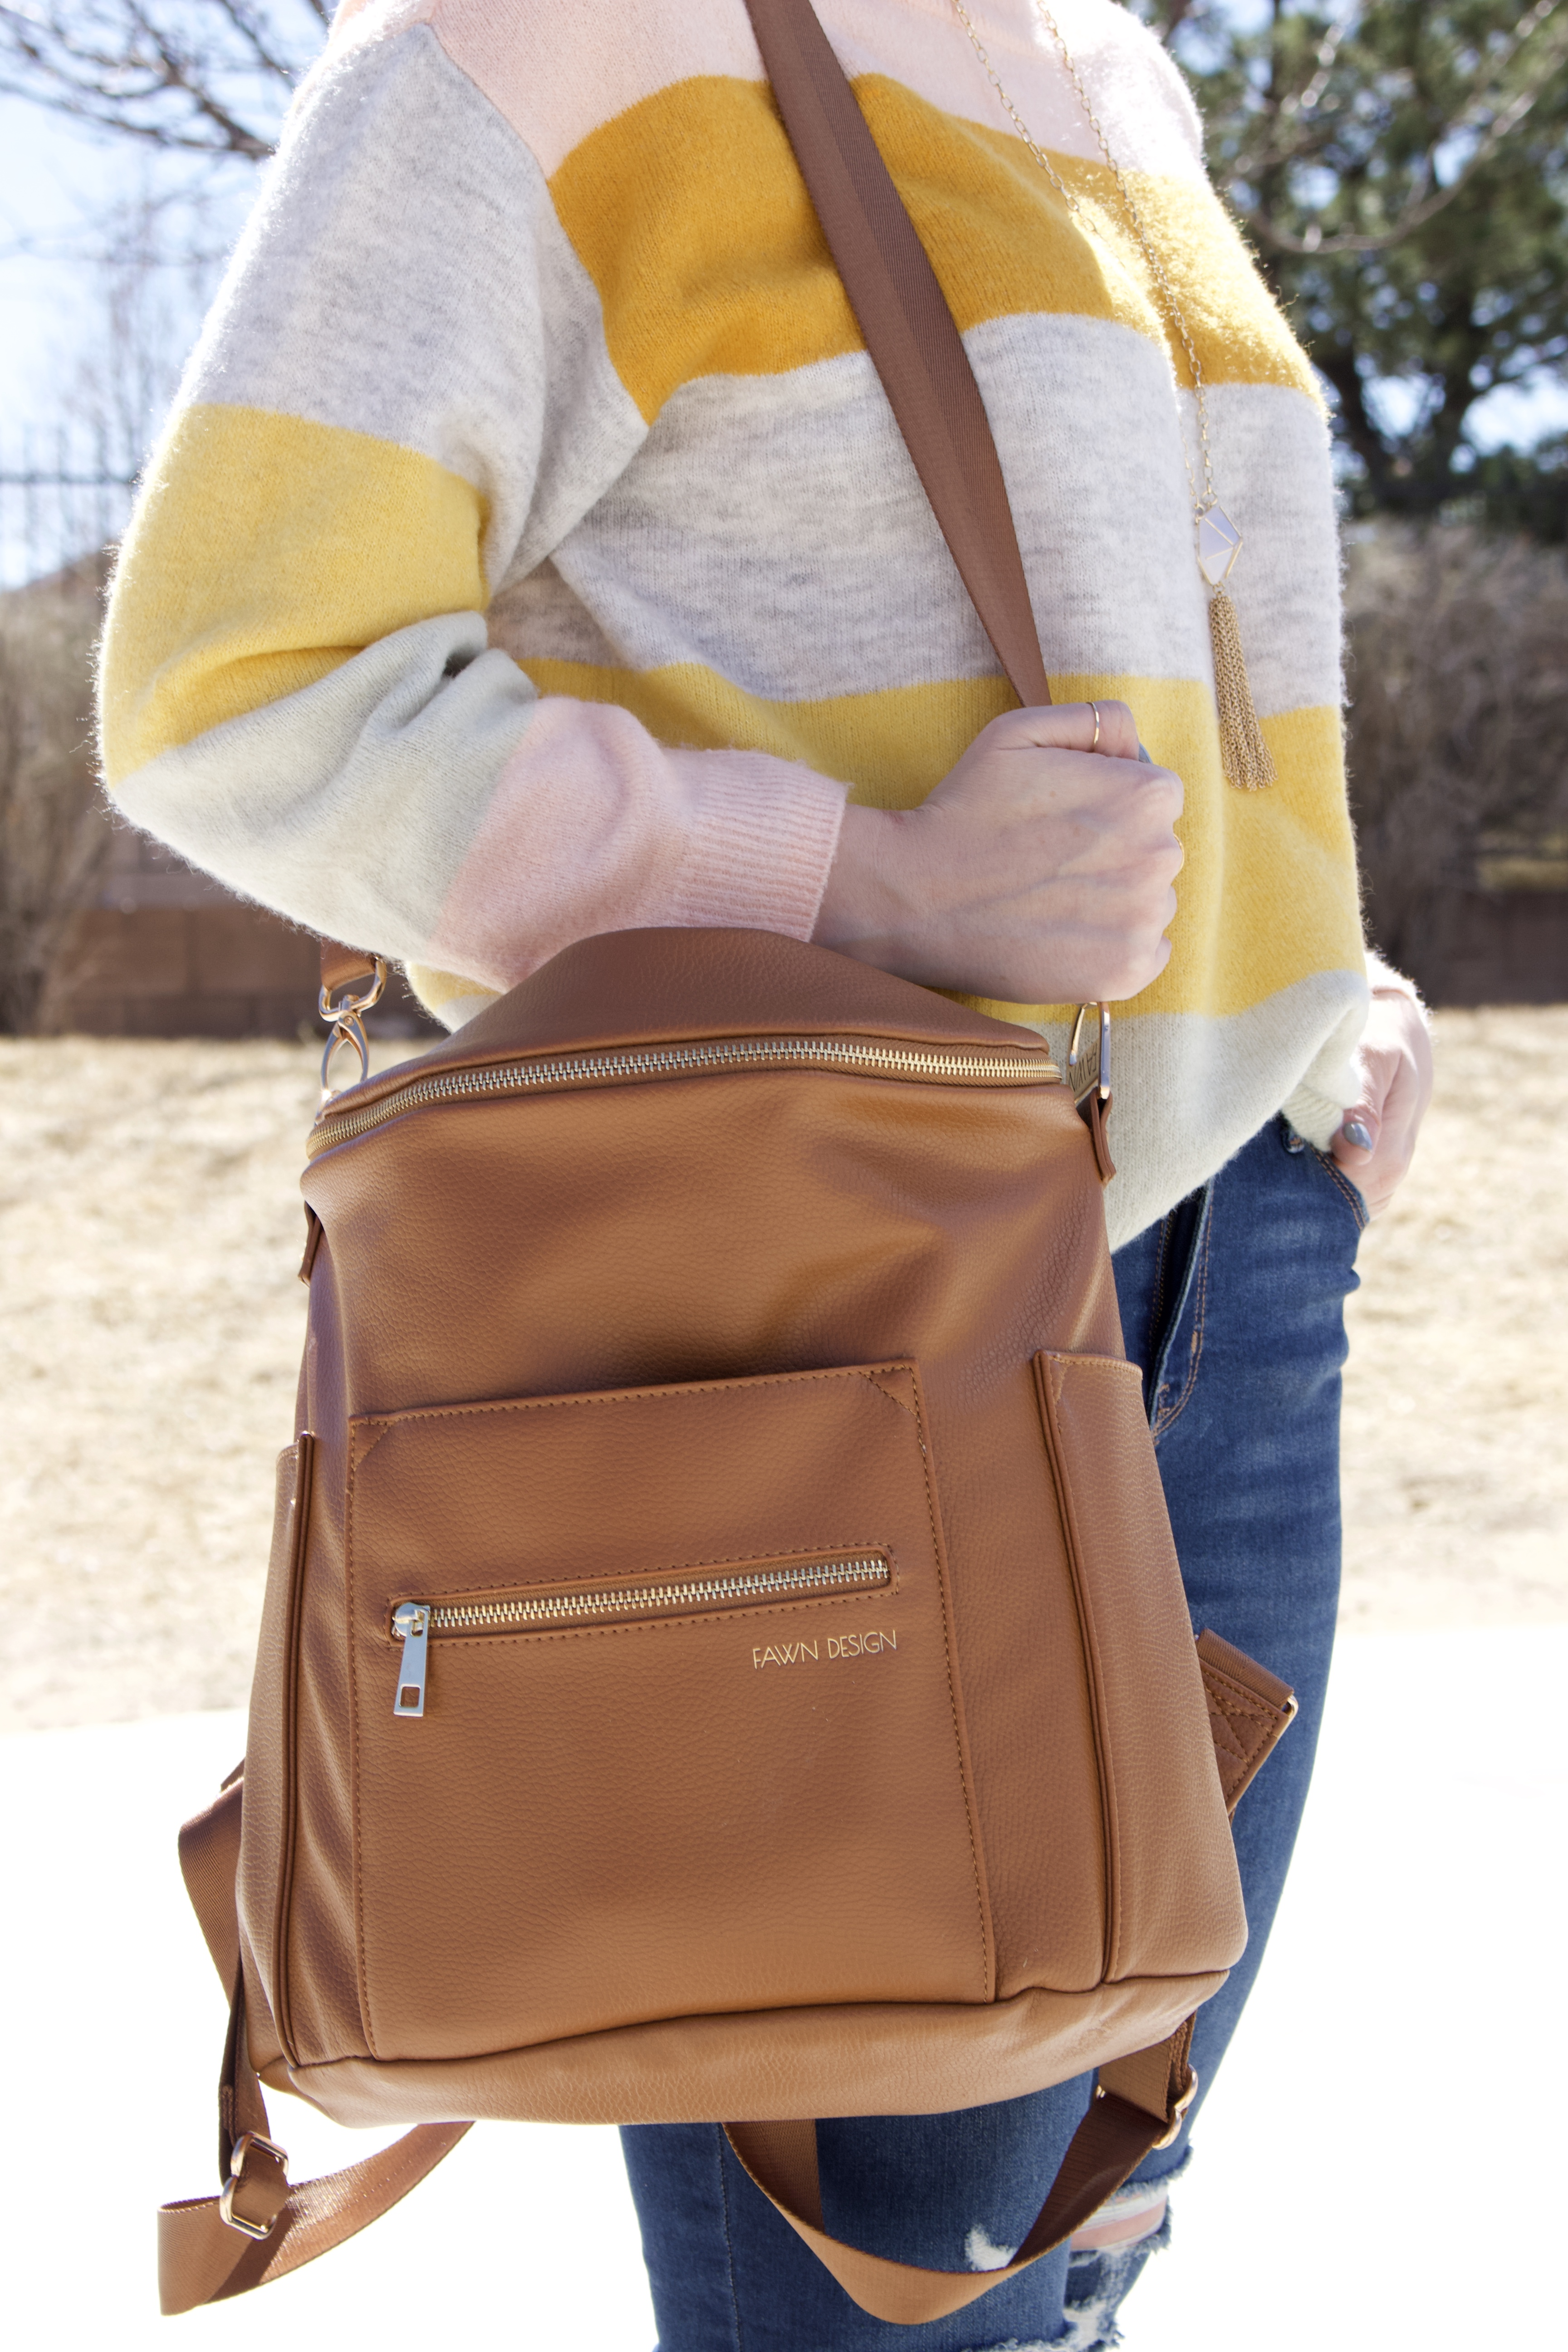 Fawn Design diaper bag #fawndesign #momstyle